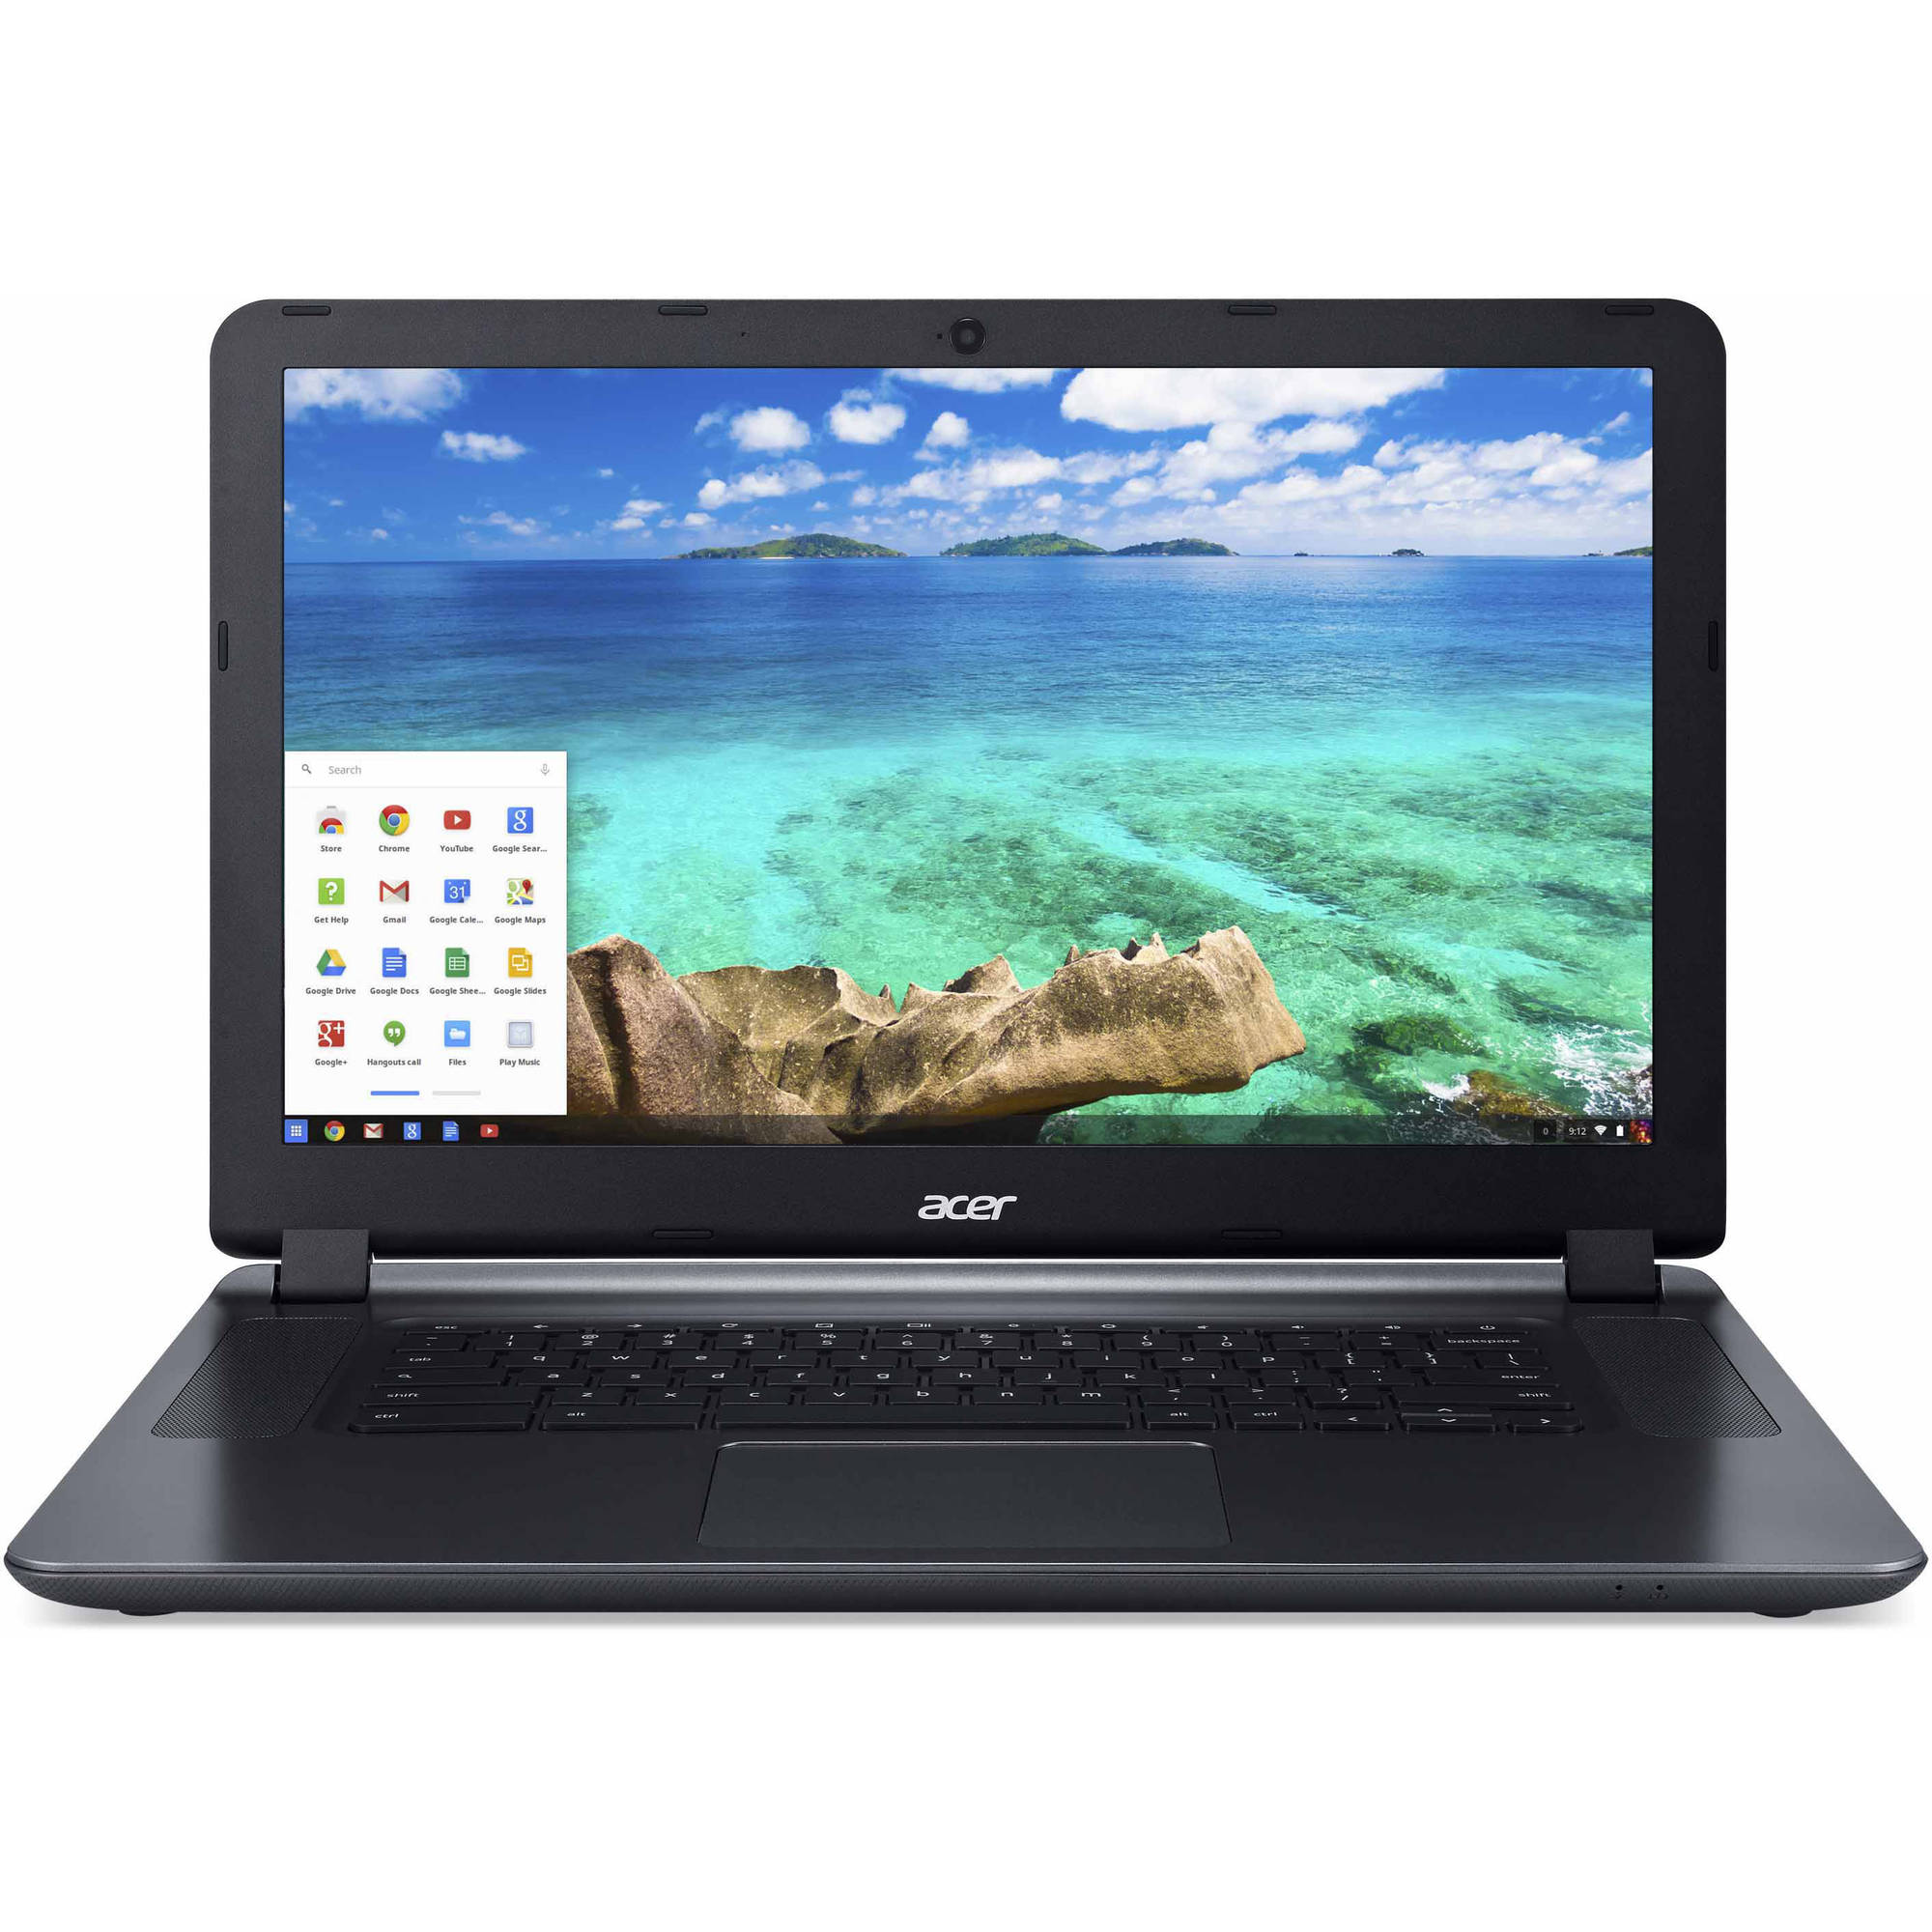 "Acer Granite Gray 15.6"" CB3-531-C4A5 Chromebook PC with Intel Celeron N2830 Dual-Core Processor, 2GB Memory, 16GB Hard Drive and Chrome OS"